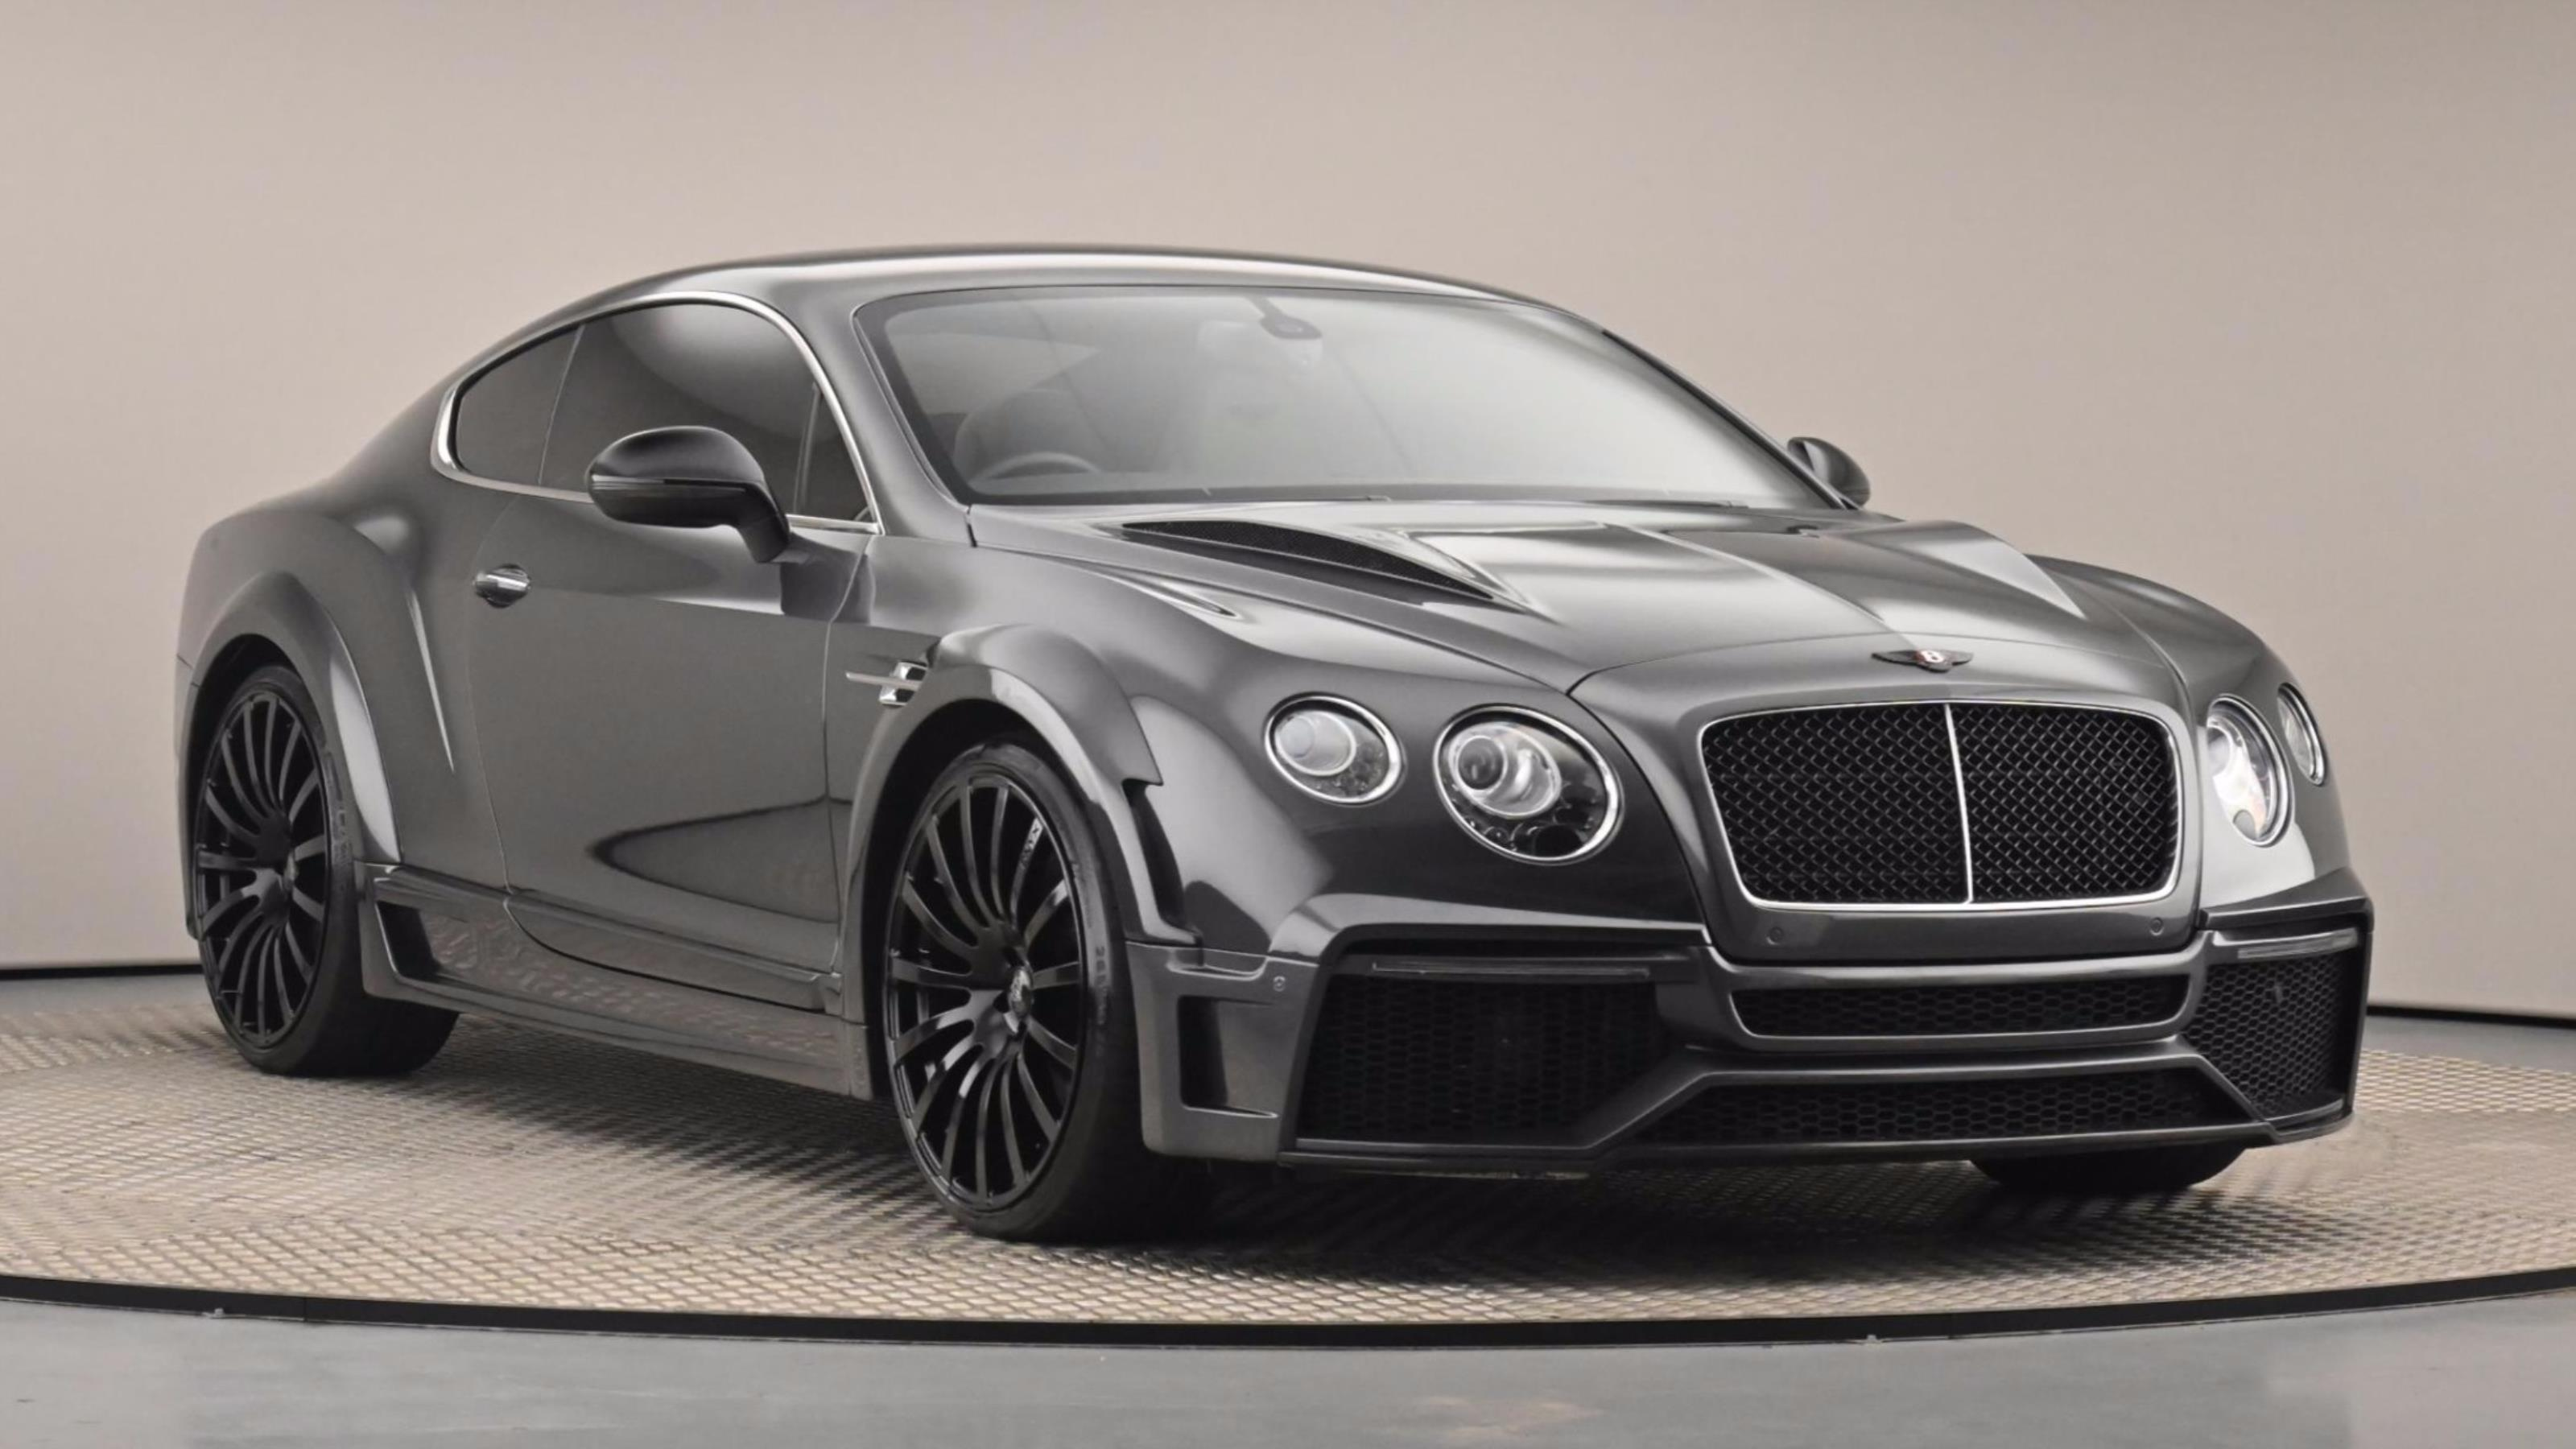 Used 2015 Bentley CONTINENTAL GT 4.0 V8 S 2dr Auto GREY at Saxton4x4